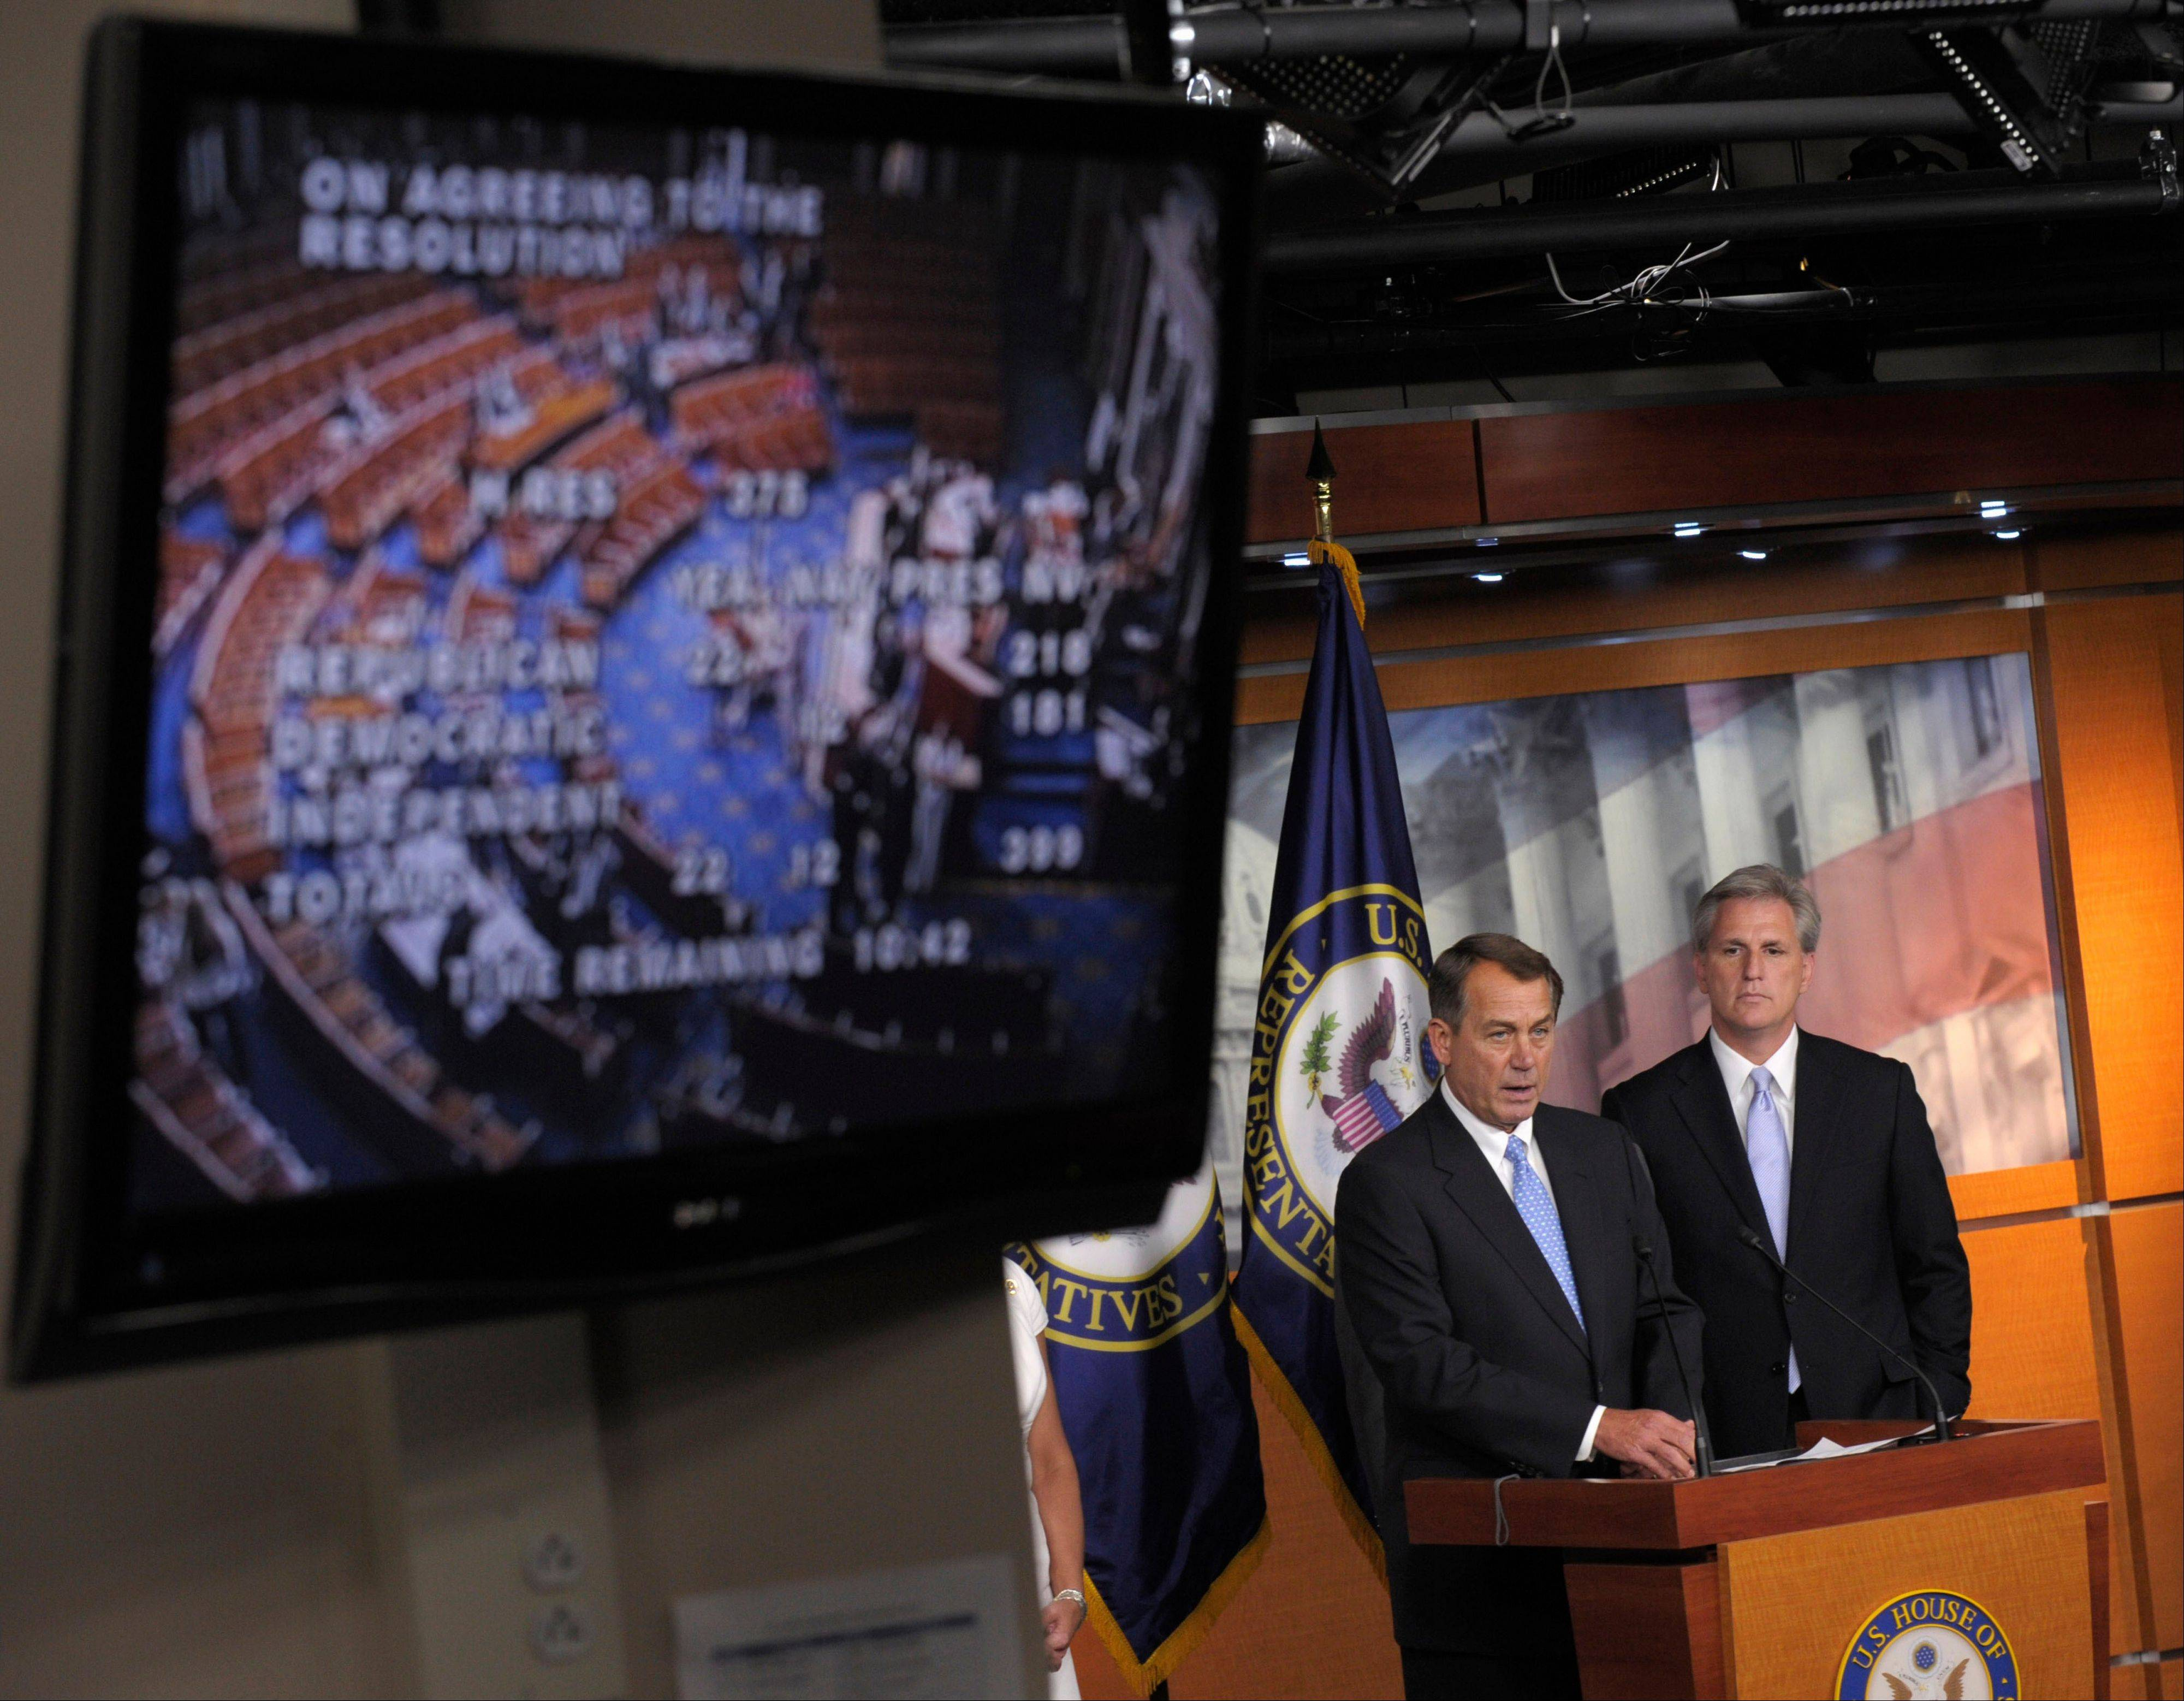 House Speaker John Boehner of Ohio, left, accompanied by House Majority Whip Kevin McCarthy of California, speaks during a news conference on Capitol Hill Thursday.